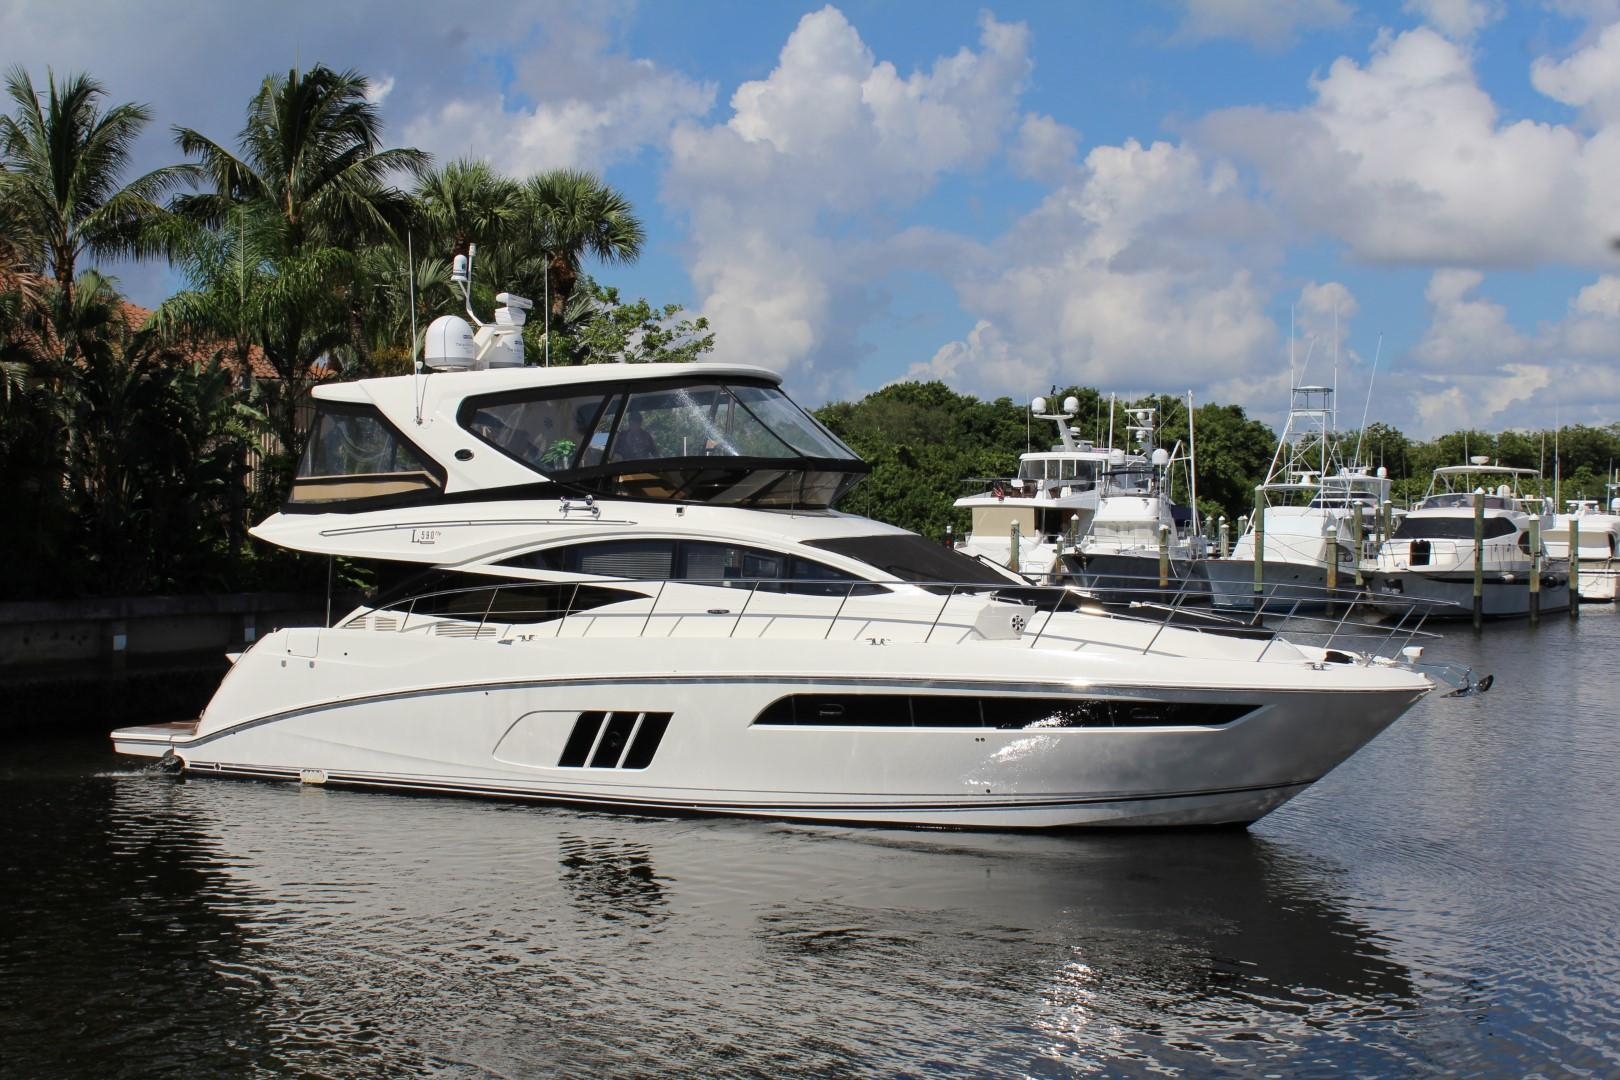 59 ft Sea Ray L590 Fly RARE MAN INBOARDS